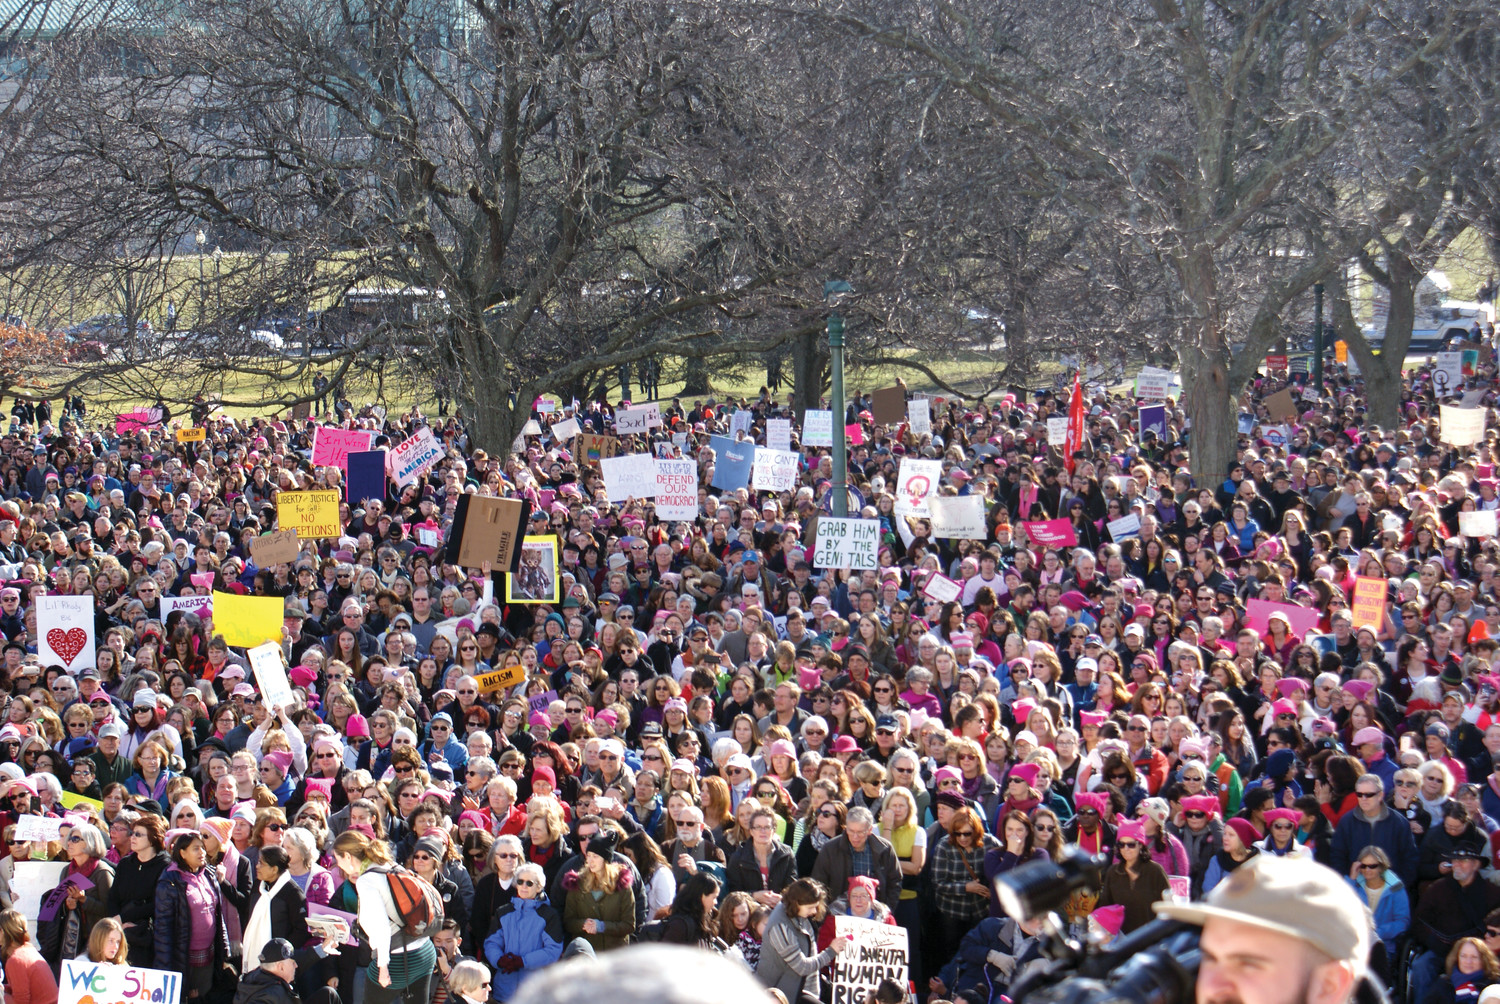 WOMEN'S MARCH THIS WEEKEND: Taken at the RI State House steps is last year's RI Women's March that echoed those in Washington, D.C. and across the globe. The march will be held Jan. 20 from noon to 2 p.m. on the South Lawn of the State House.